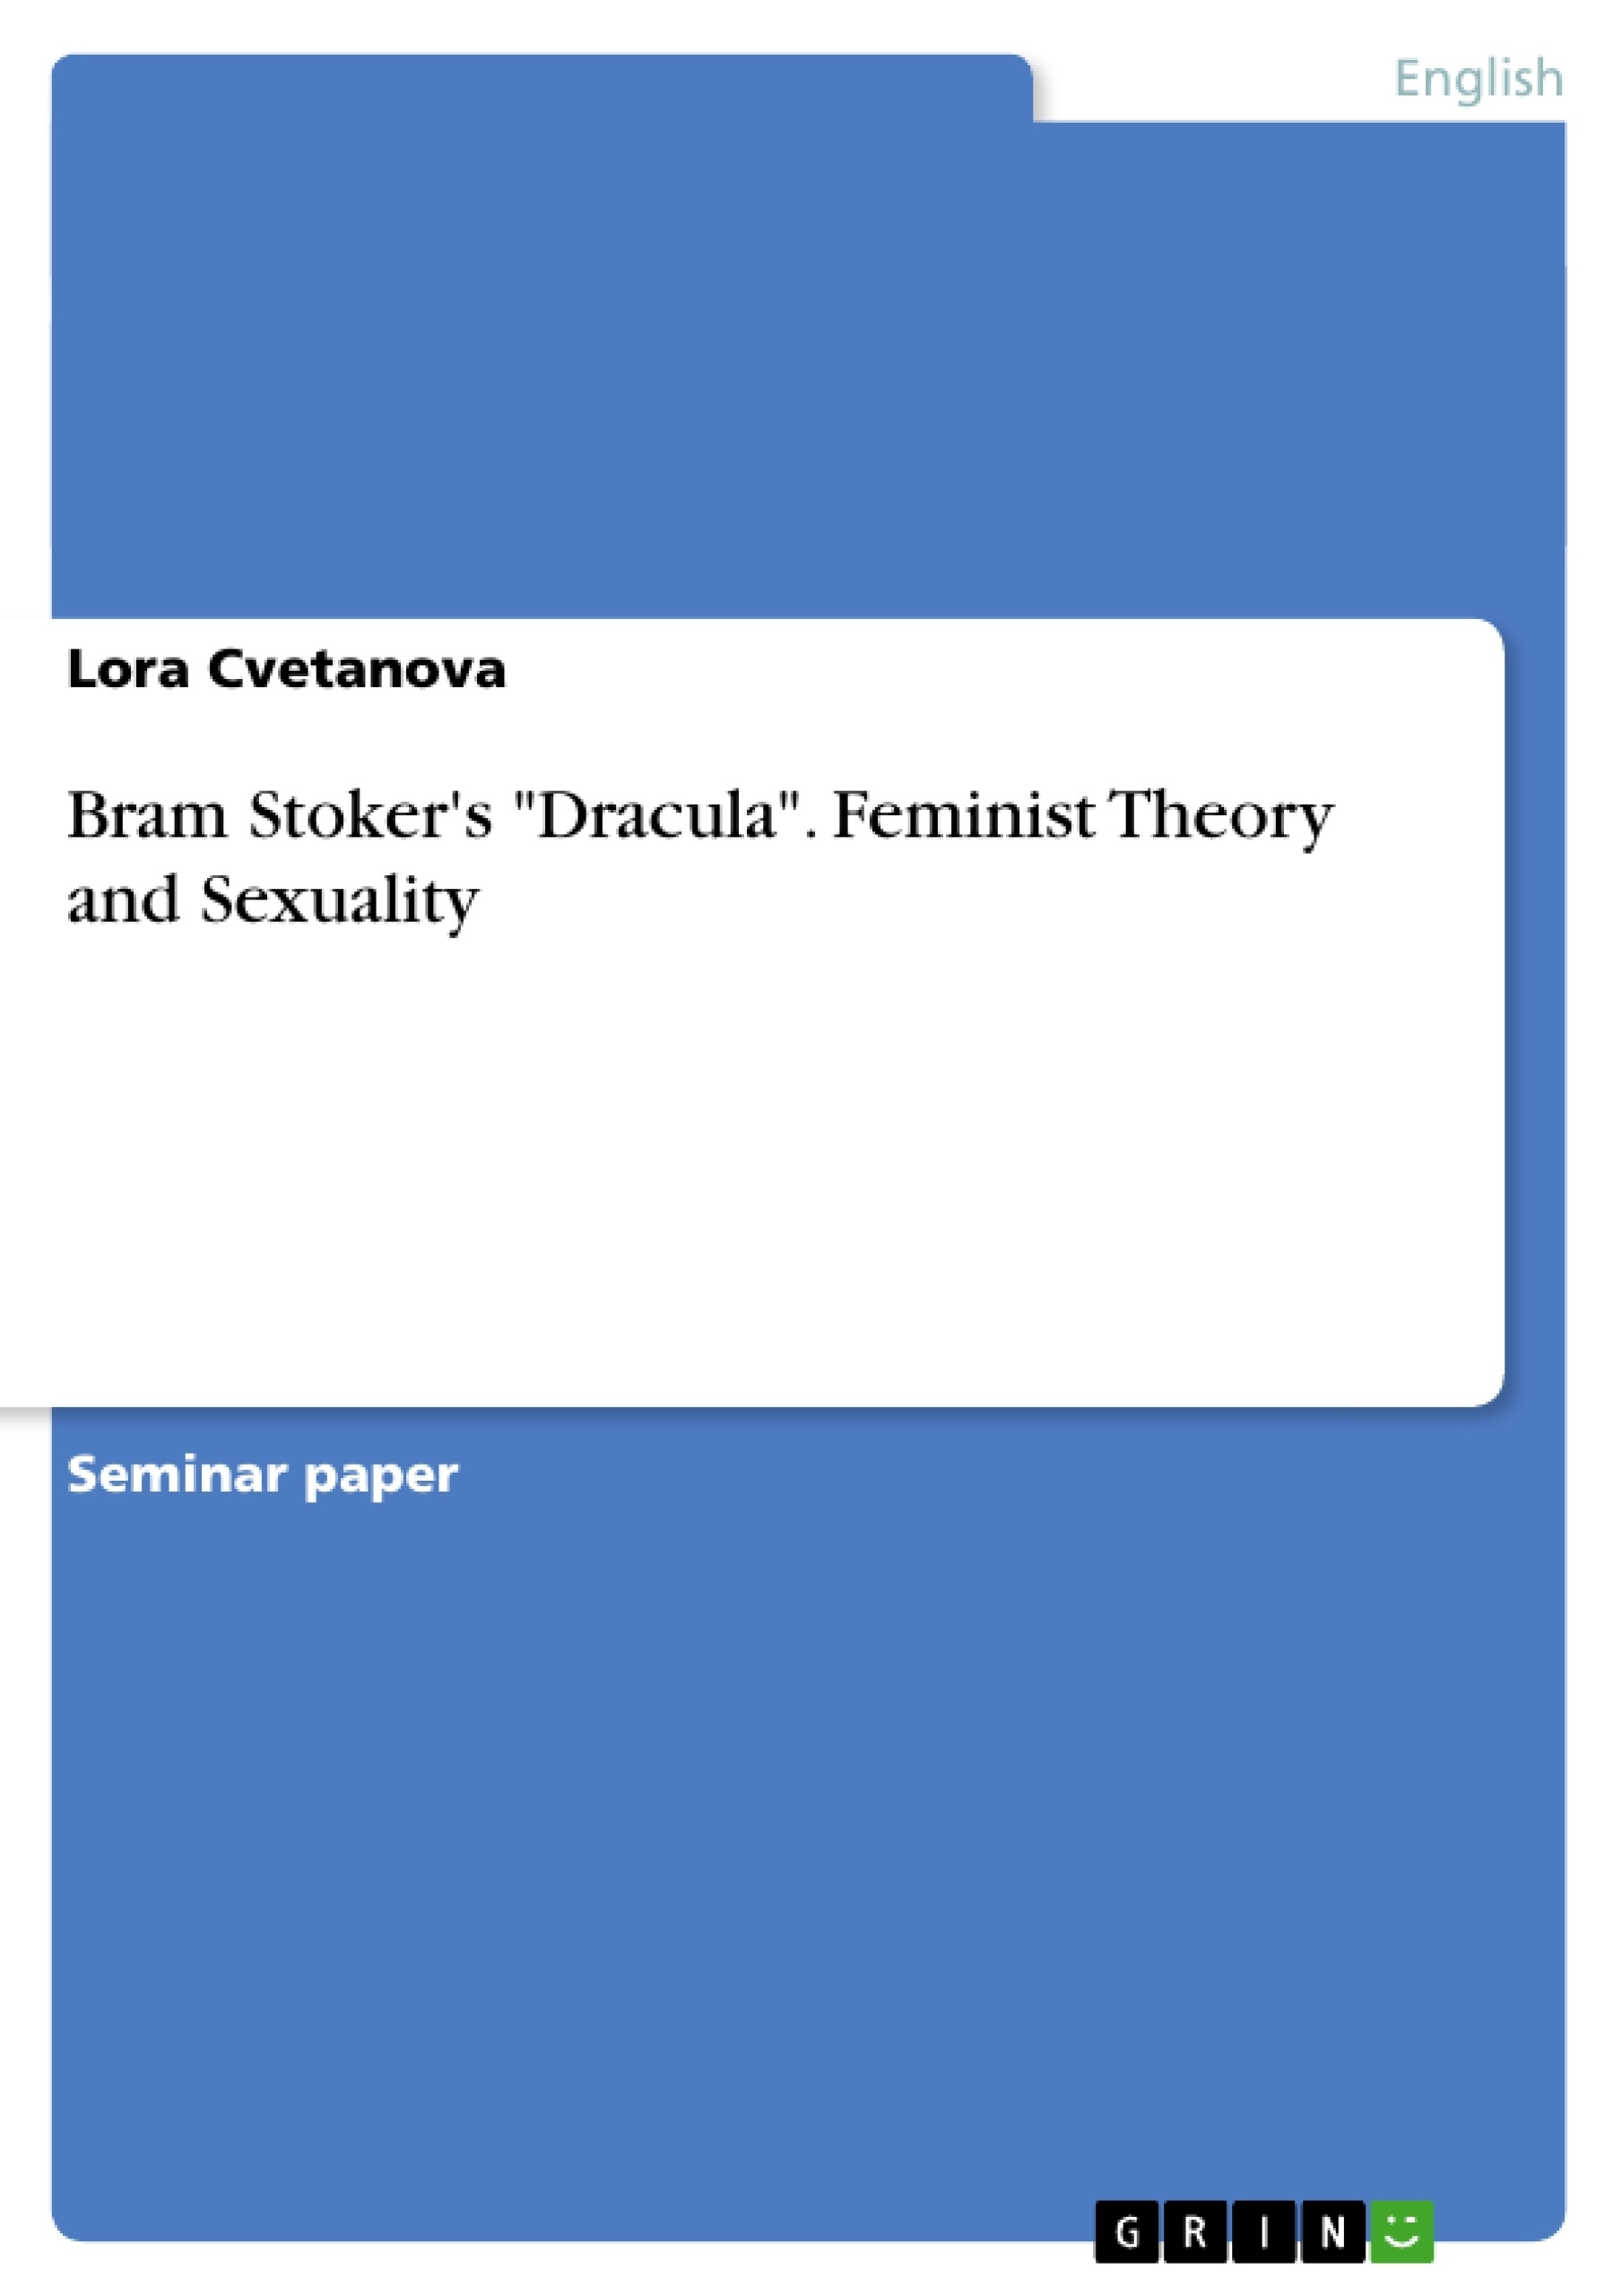 bram stoker s dracula feminist theory and sexuality publish upload your own papers earn money and win an iphone 7